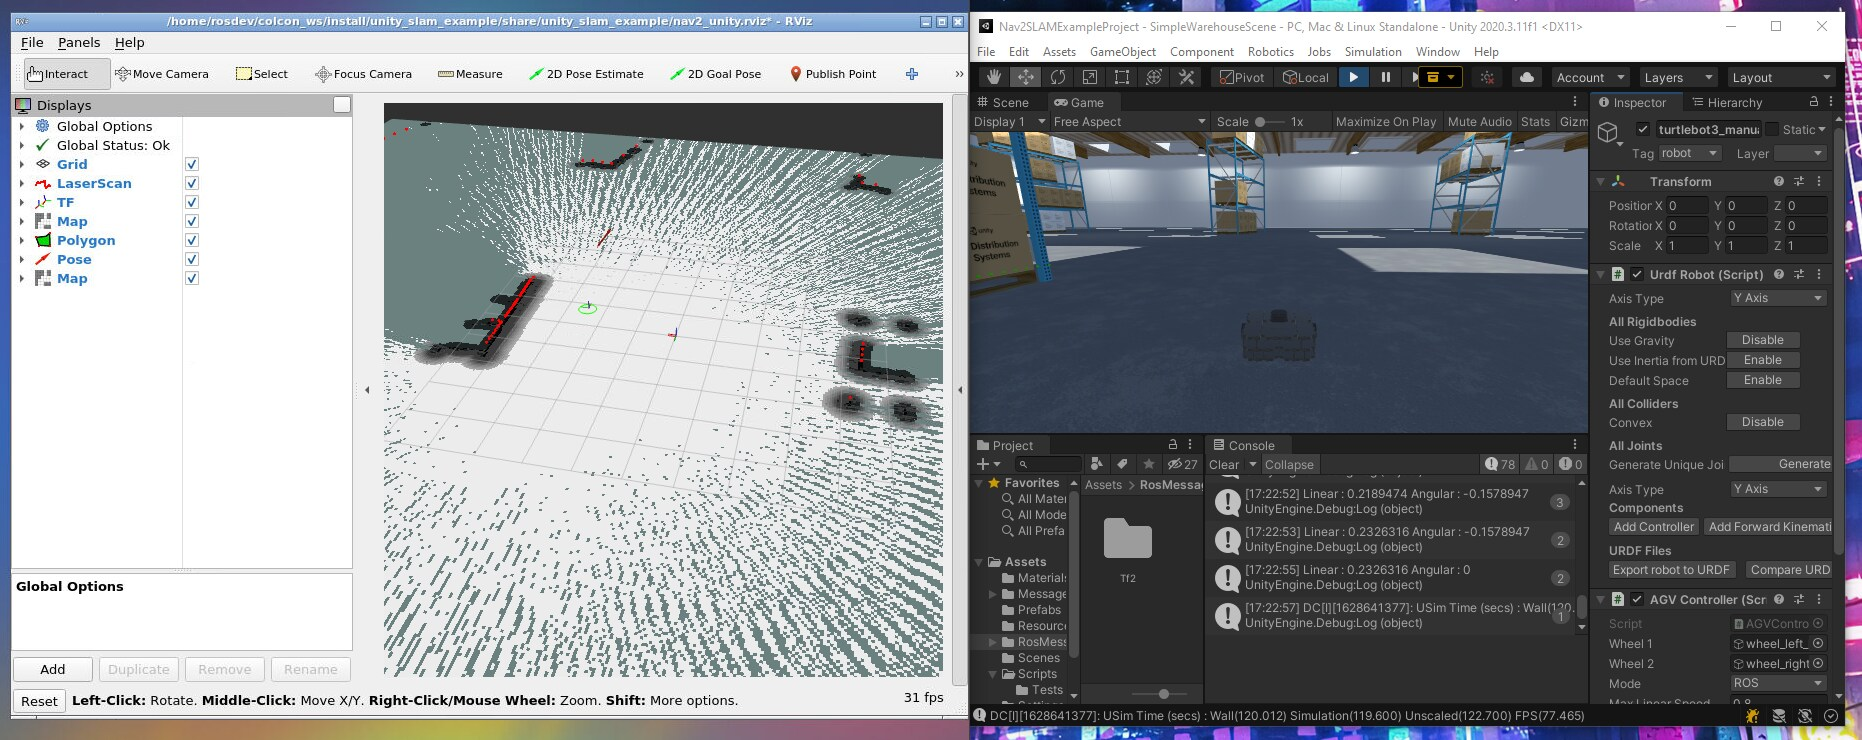 Left: RViz display of ROS 2 messages generated in and sent by Unity. Right: TurtleBot 3 performing SLAM and autonomous navigation in Unity.